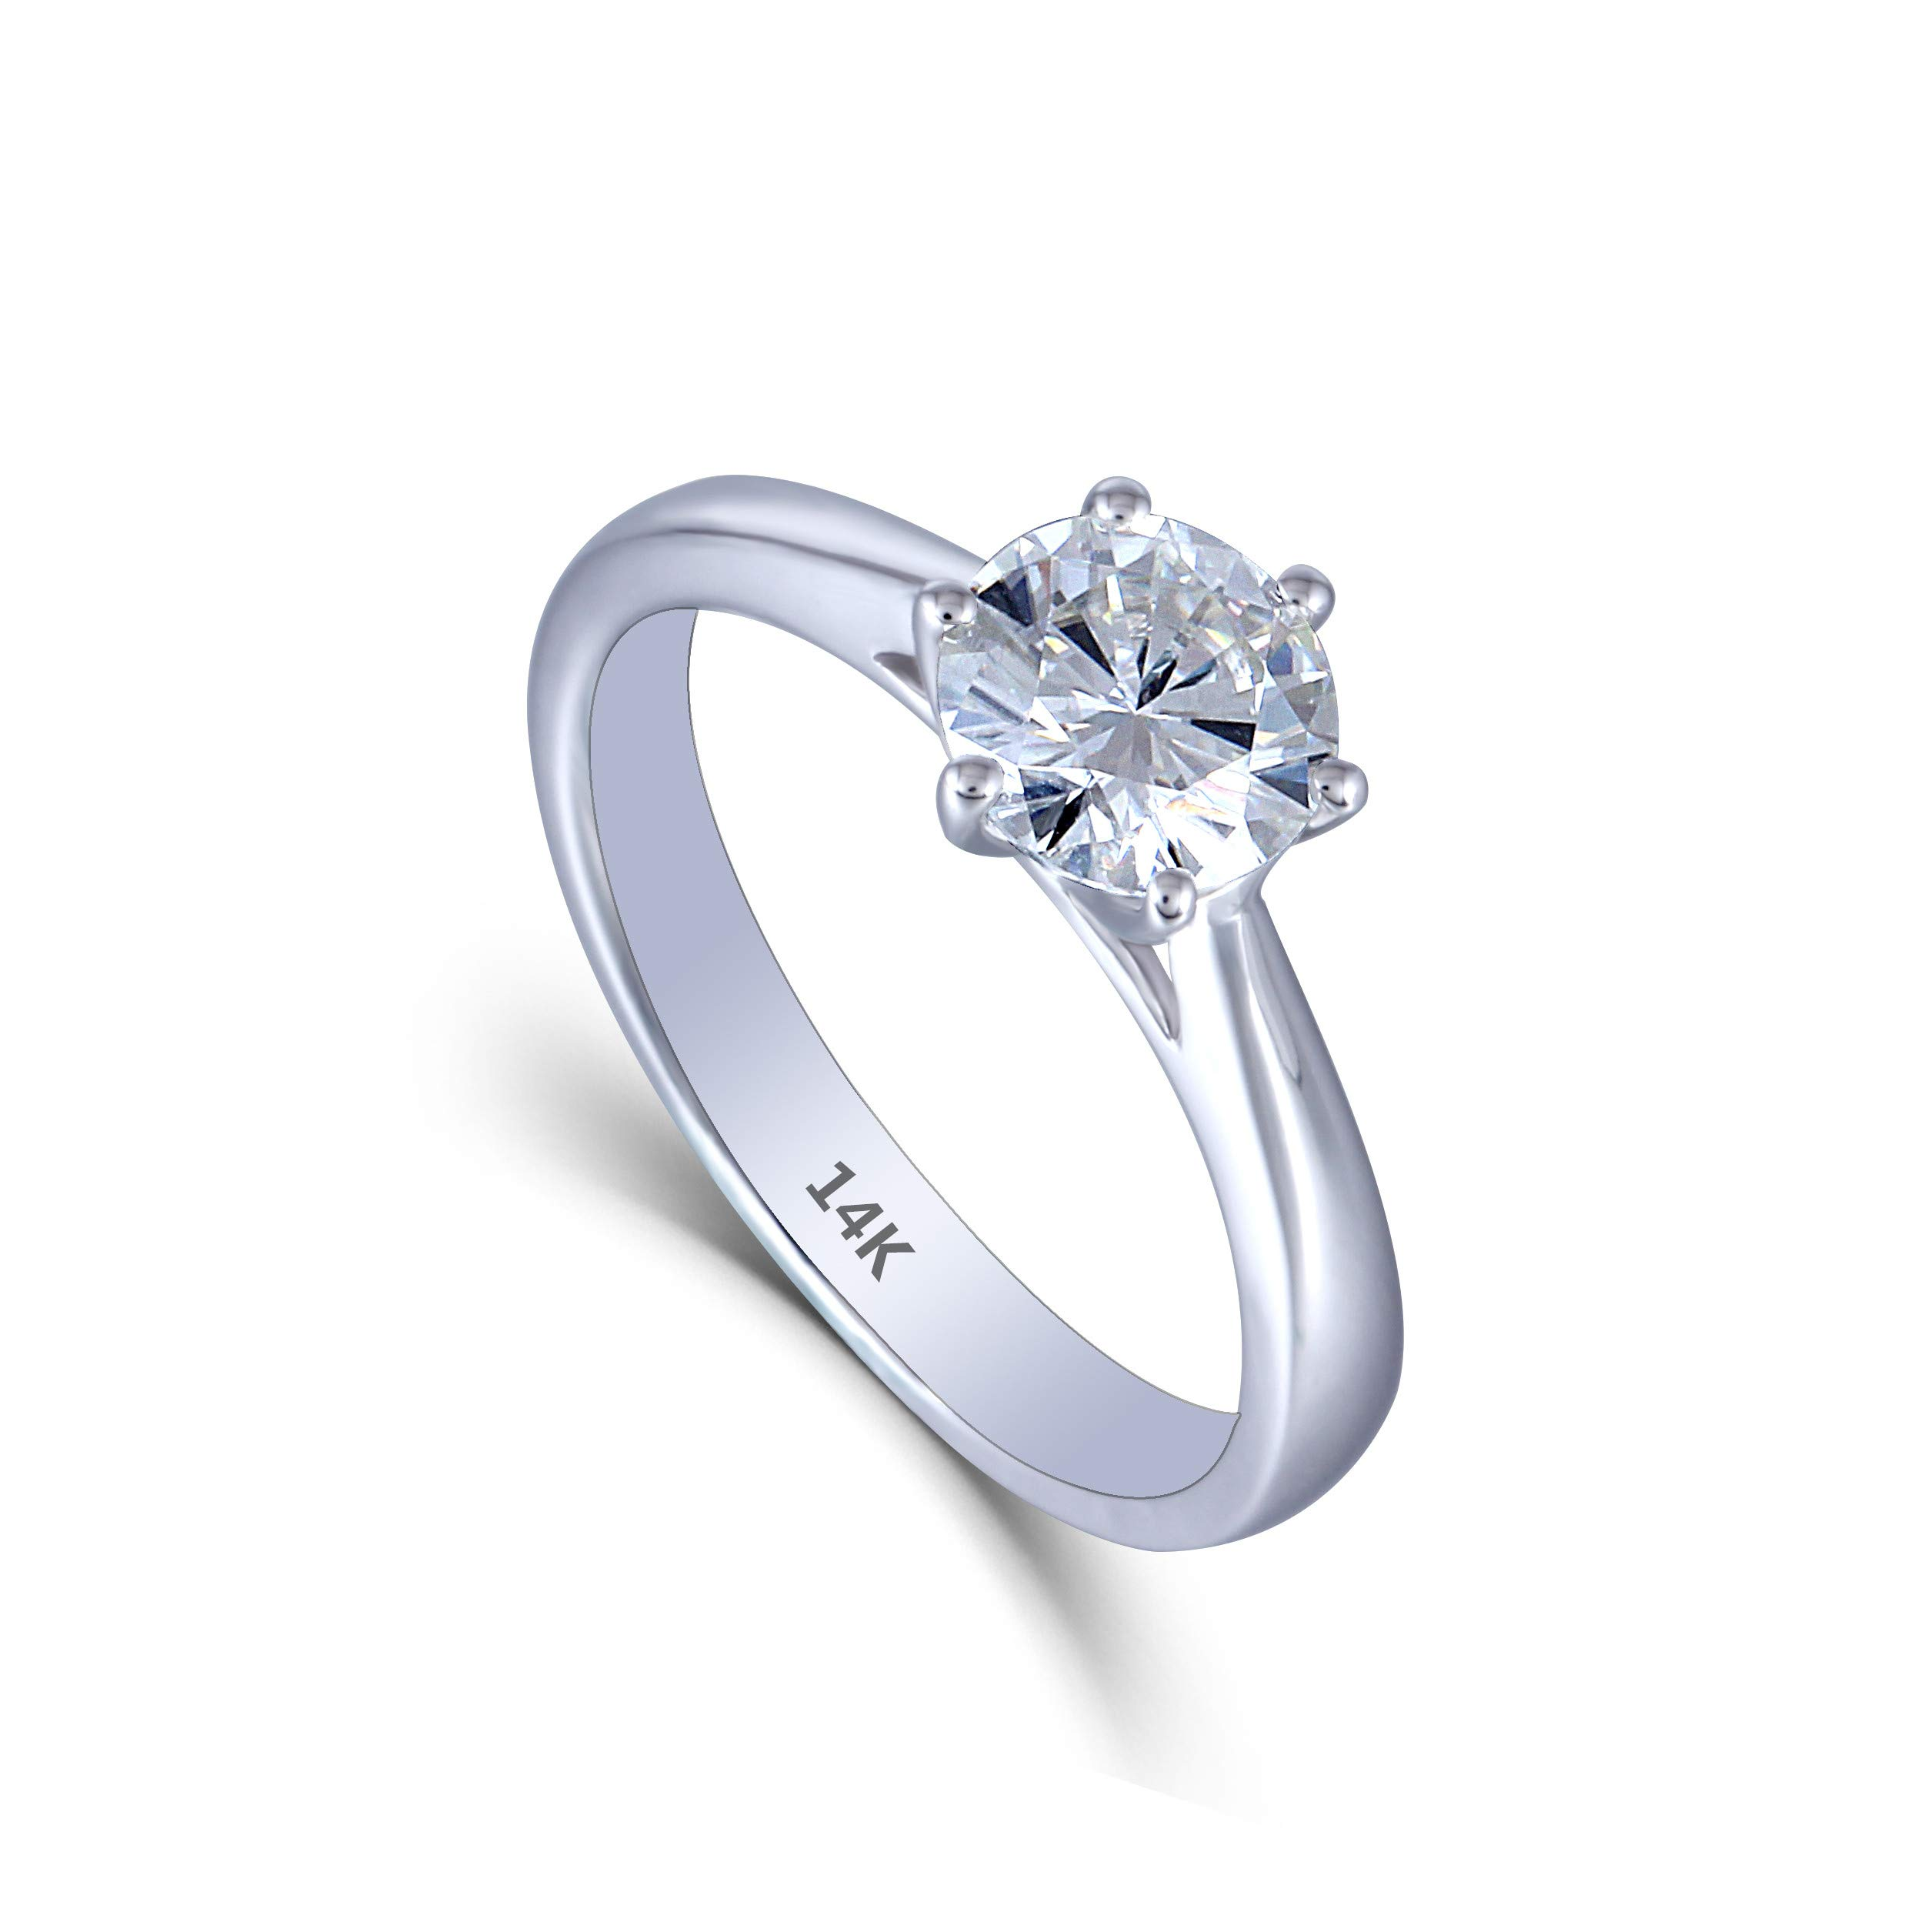 DovEggs Solid 14K White Gold 1ct 6.5mm GH Color Heart Arrows Cut Created Moissanite Solitare Engagement Rings for Women(6.5) by DovEggs